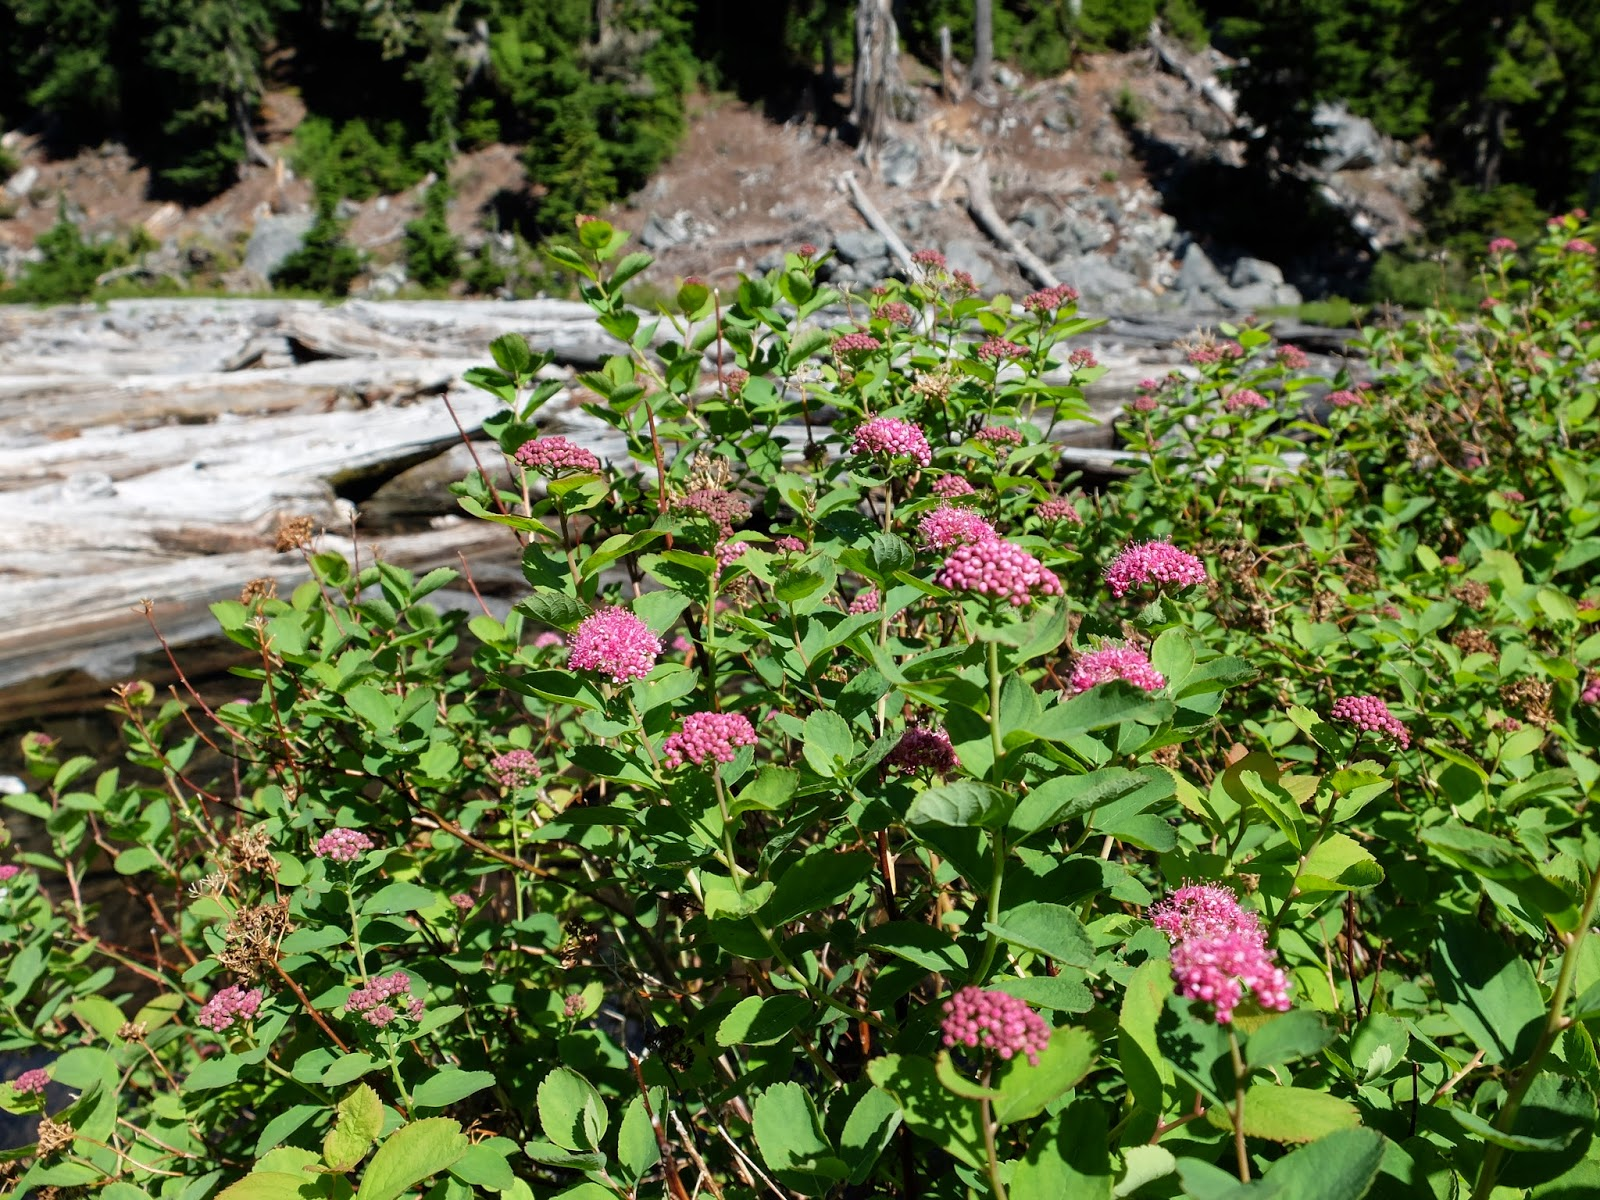 Spirea spendens (by Lake Malachite)